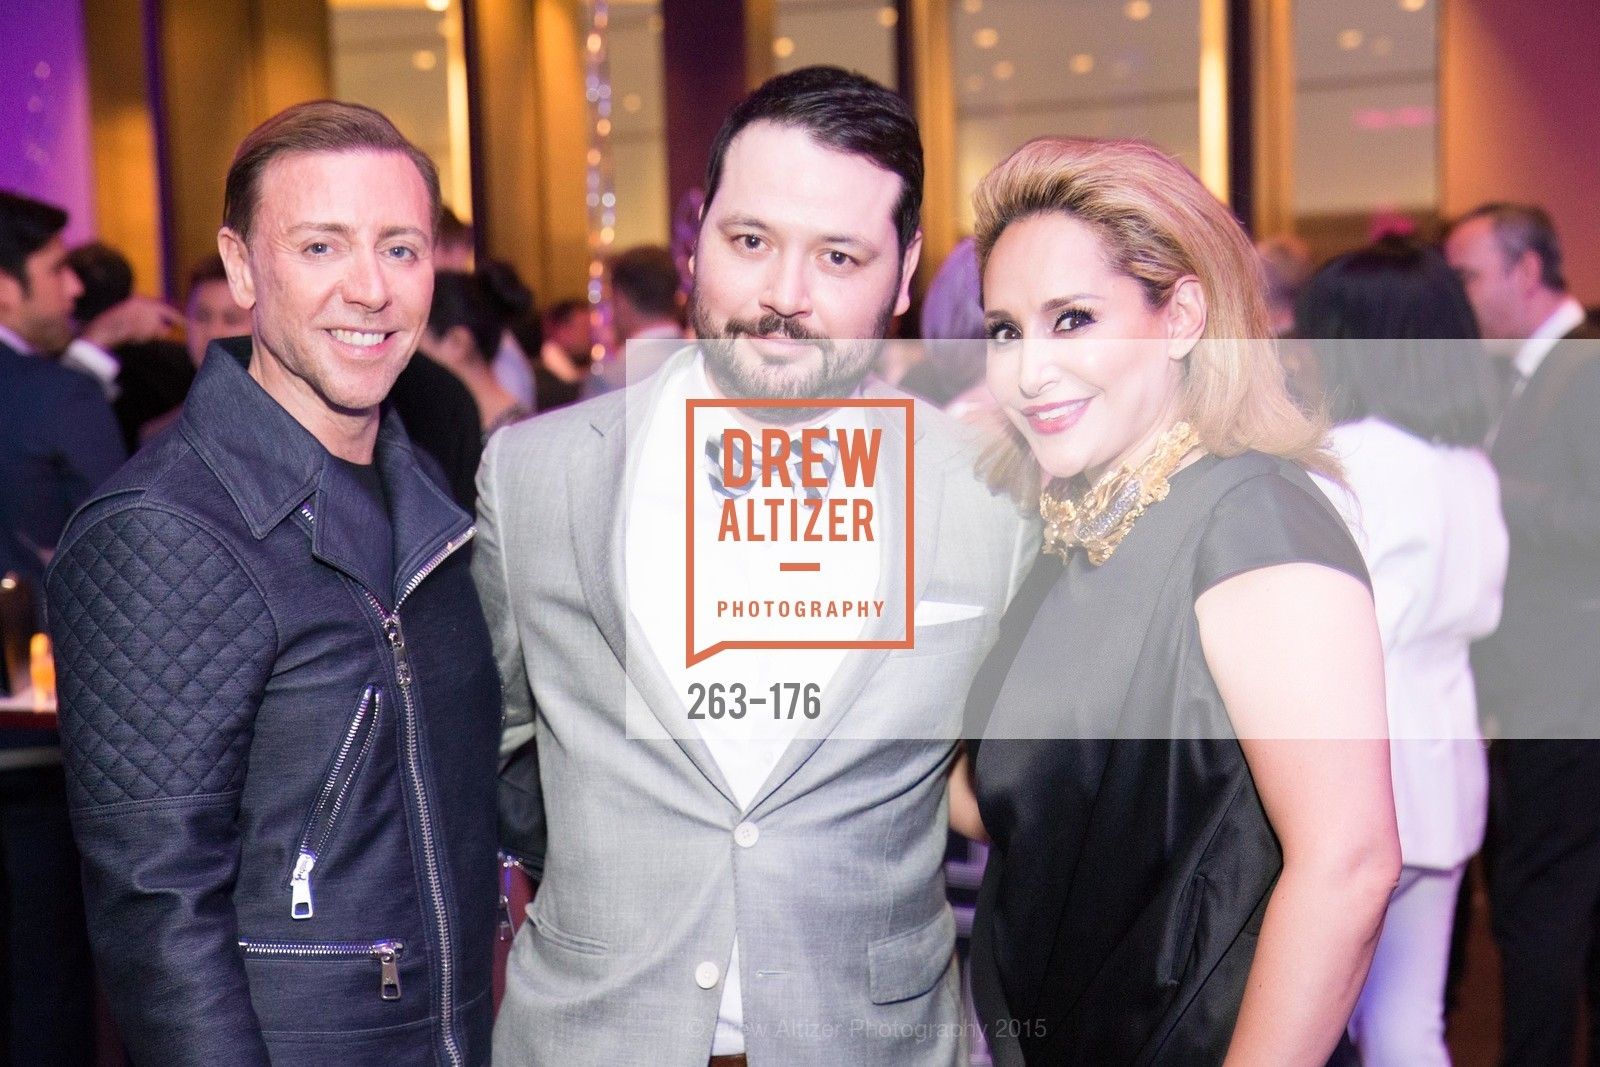 Mark Rhoades, Brandon Hernandez, Brenda Zarate, VIP Pride Celebration 2015, St. Regis, June 18th, 2015,Drew Altizer, Drew Altizer Photography, full-service agency, private events, San Francisco photographer, photographer california